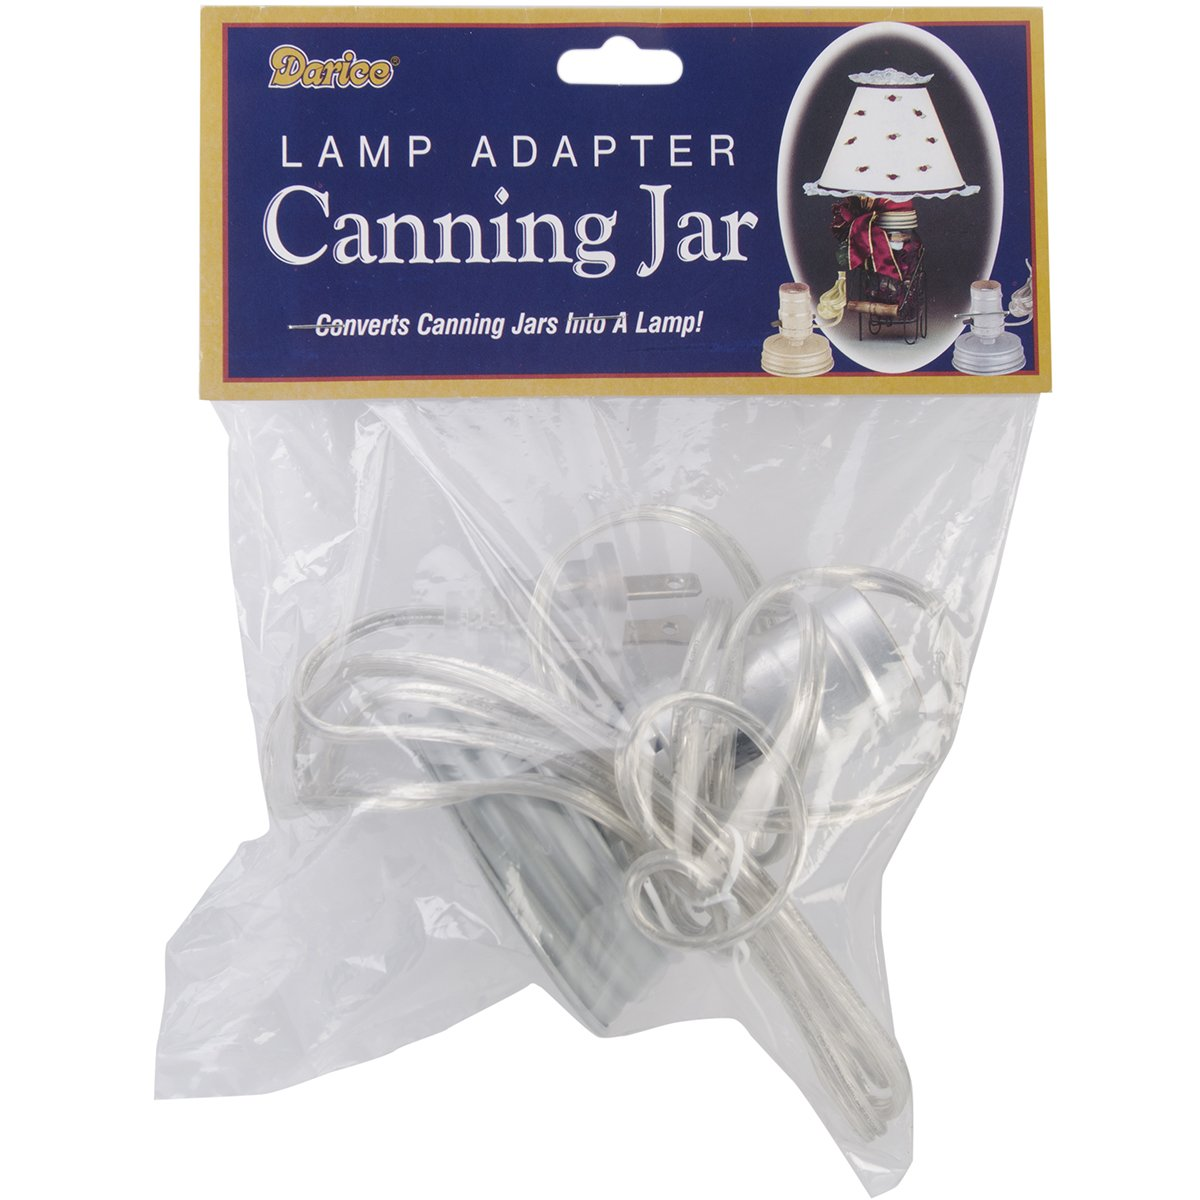 Amazon.com: Darice Canning Jar Lamp Adapter, Zinc/Small Mouth/Silver Cord:  Home U0026 Kitchen